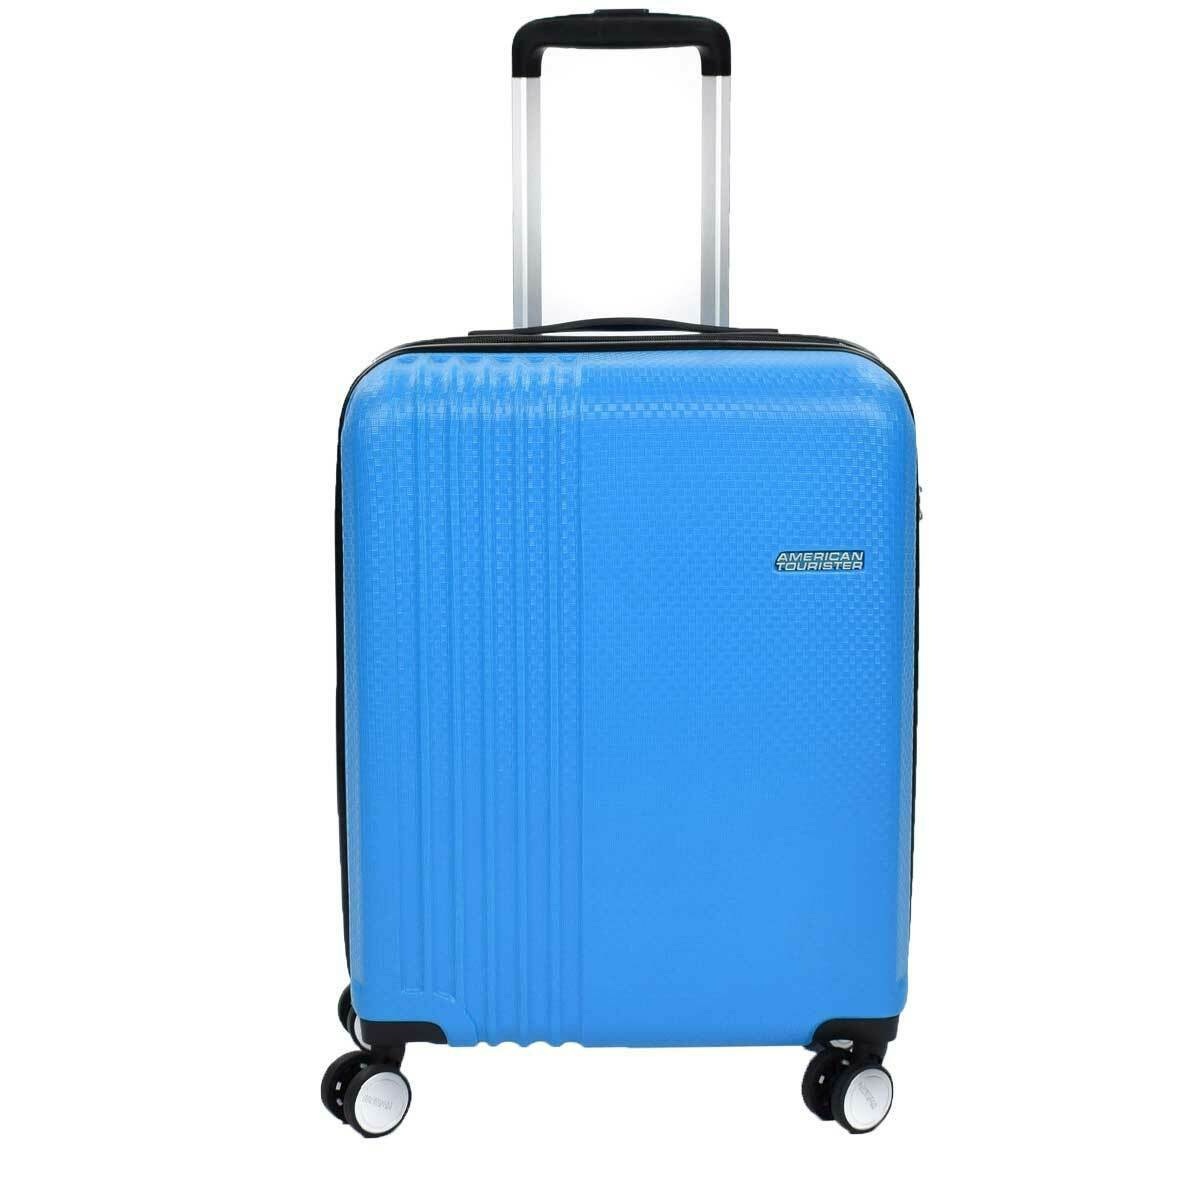 Trolley cabina American Tourister BEACHRIDER 4 ruote 34 lt.